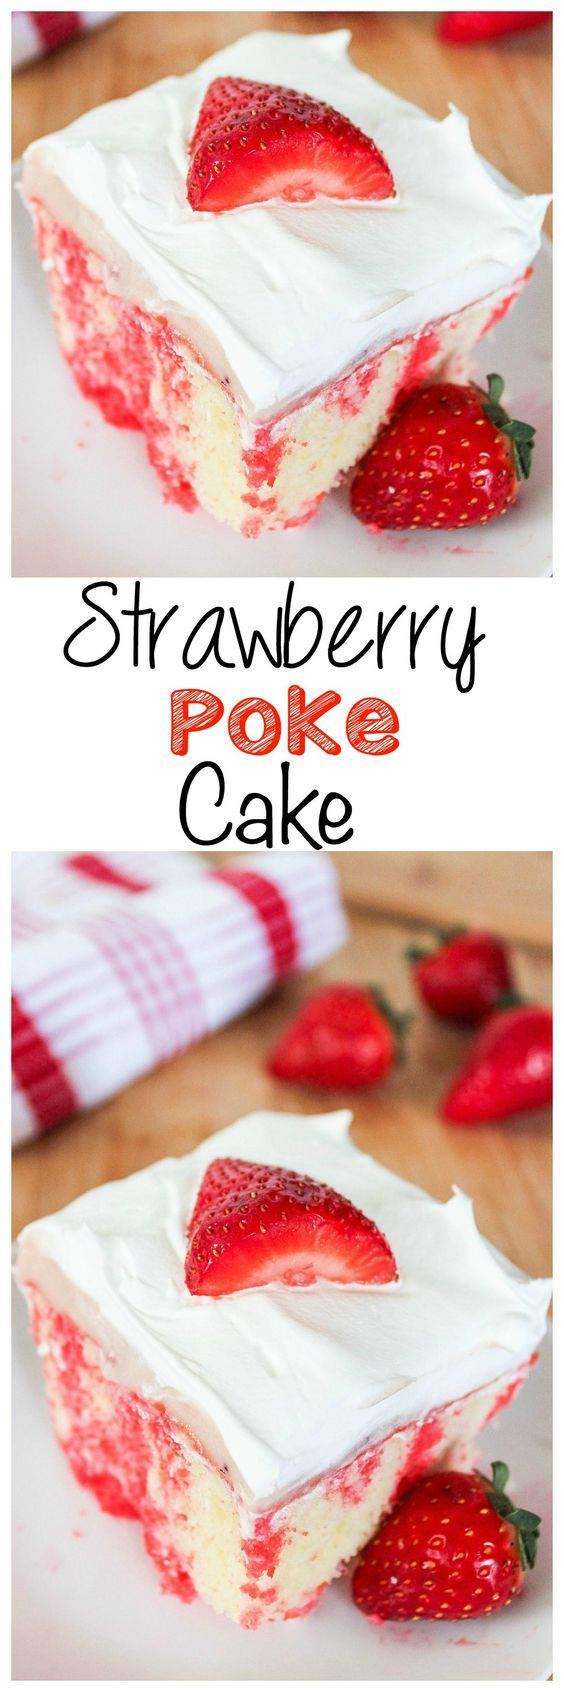 Strawberry Poke Cake: Moist white cake bursting with strawberries and topped with whipped cream. All the flavors of strawberry cheesecake in an easy to make sheet cake!